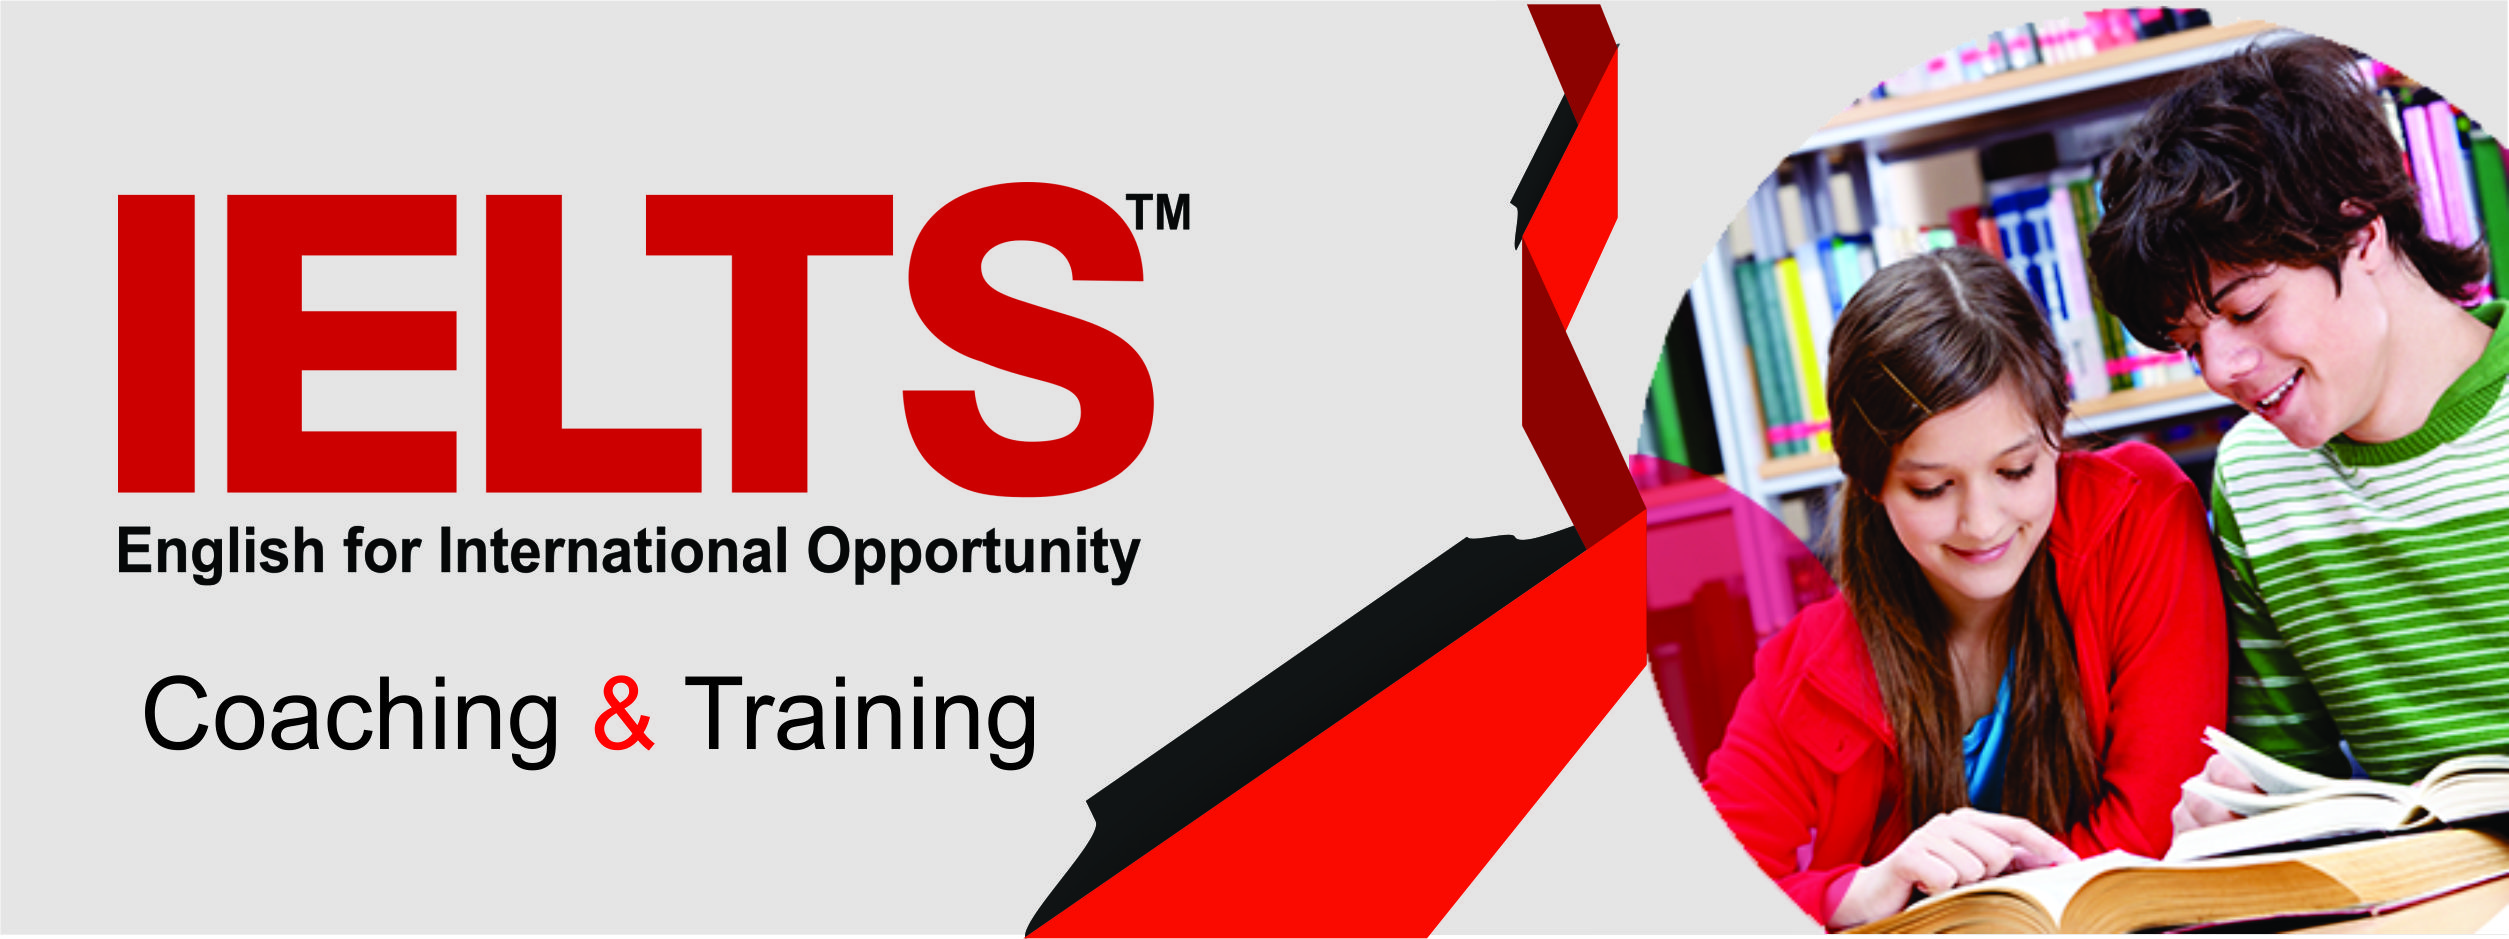 IELTS coaching centre in Rajpura | IELTS Preparation | IELTS Training